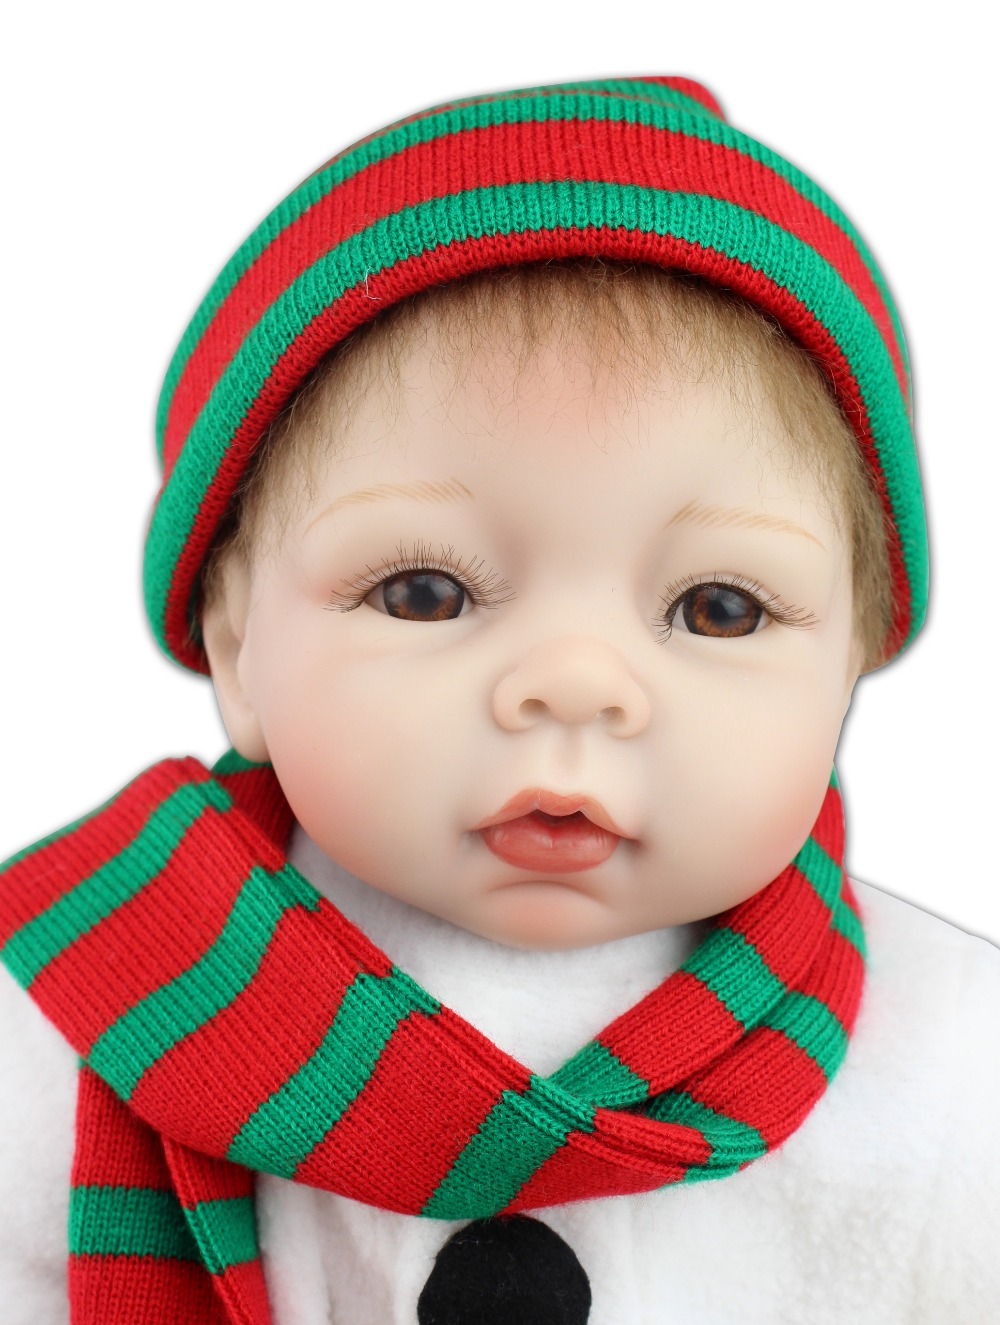 Best quality Christmas gift doll  22inch reborn baby doll lifelike soft silicone vinyl real gentle touch new fashion design reborn toddler doll rooted hair soft silicone vinyl real gentle touch 28inches fashion gift for birthday